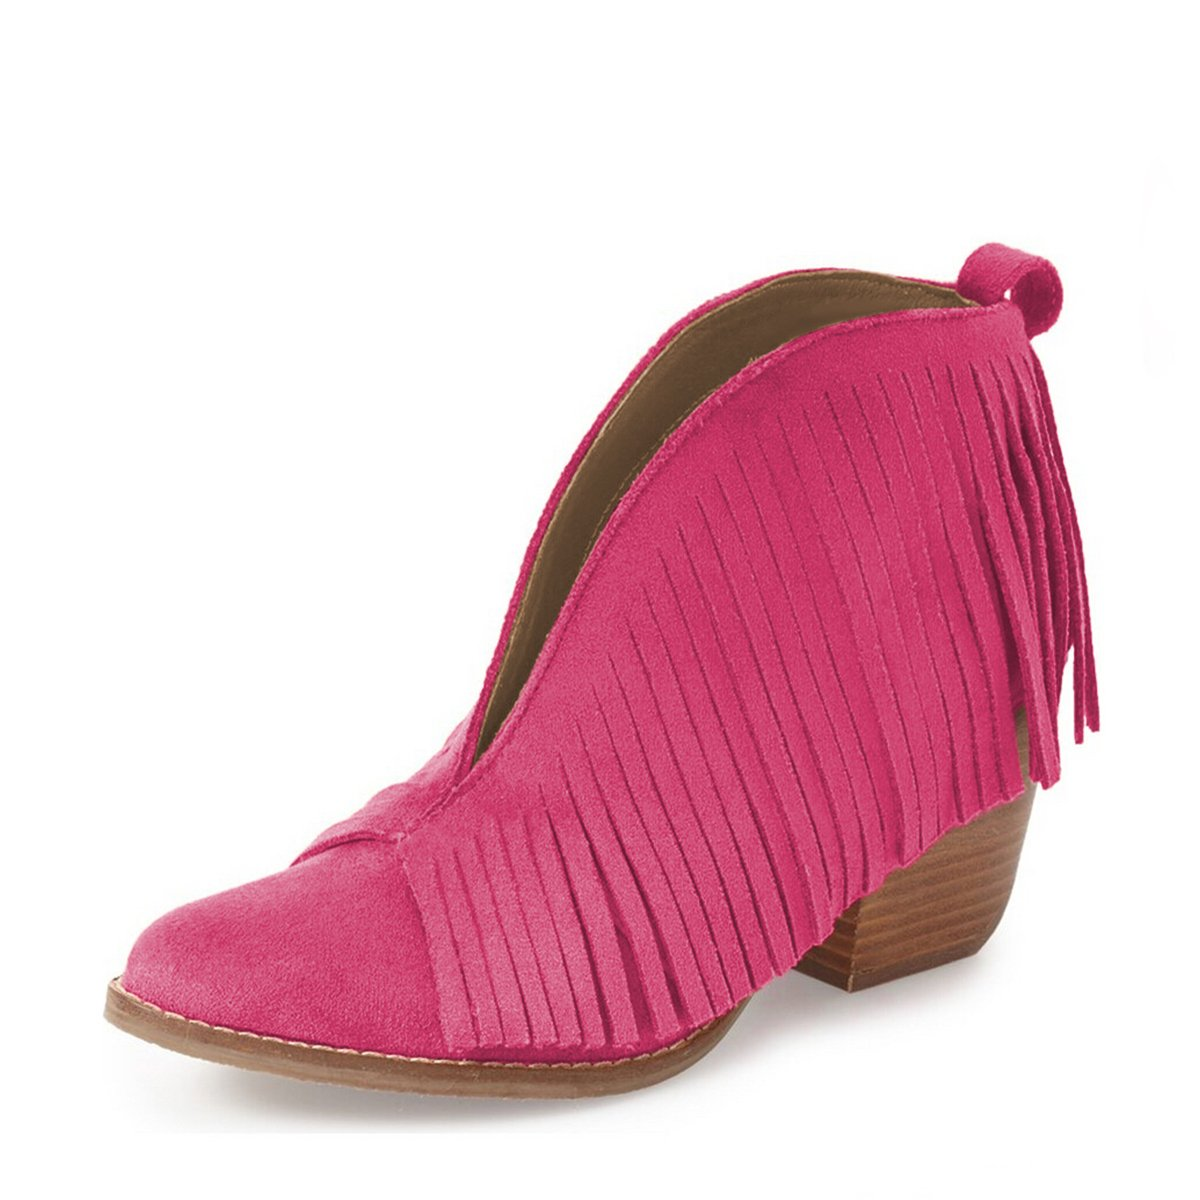 YDN Western Ankle High Boots with Tassels Round Toe Block Heel Suede Retro Booties B01KC29Y3O 11 B(M) US|Fuchsia